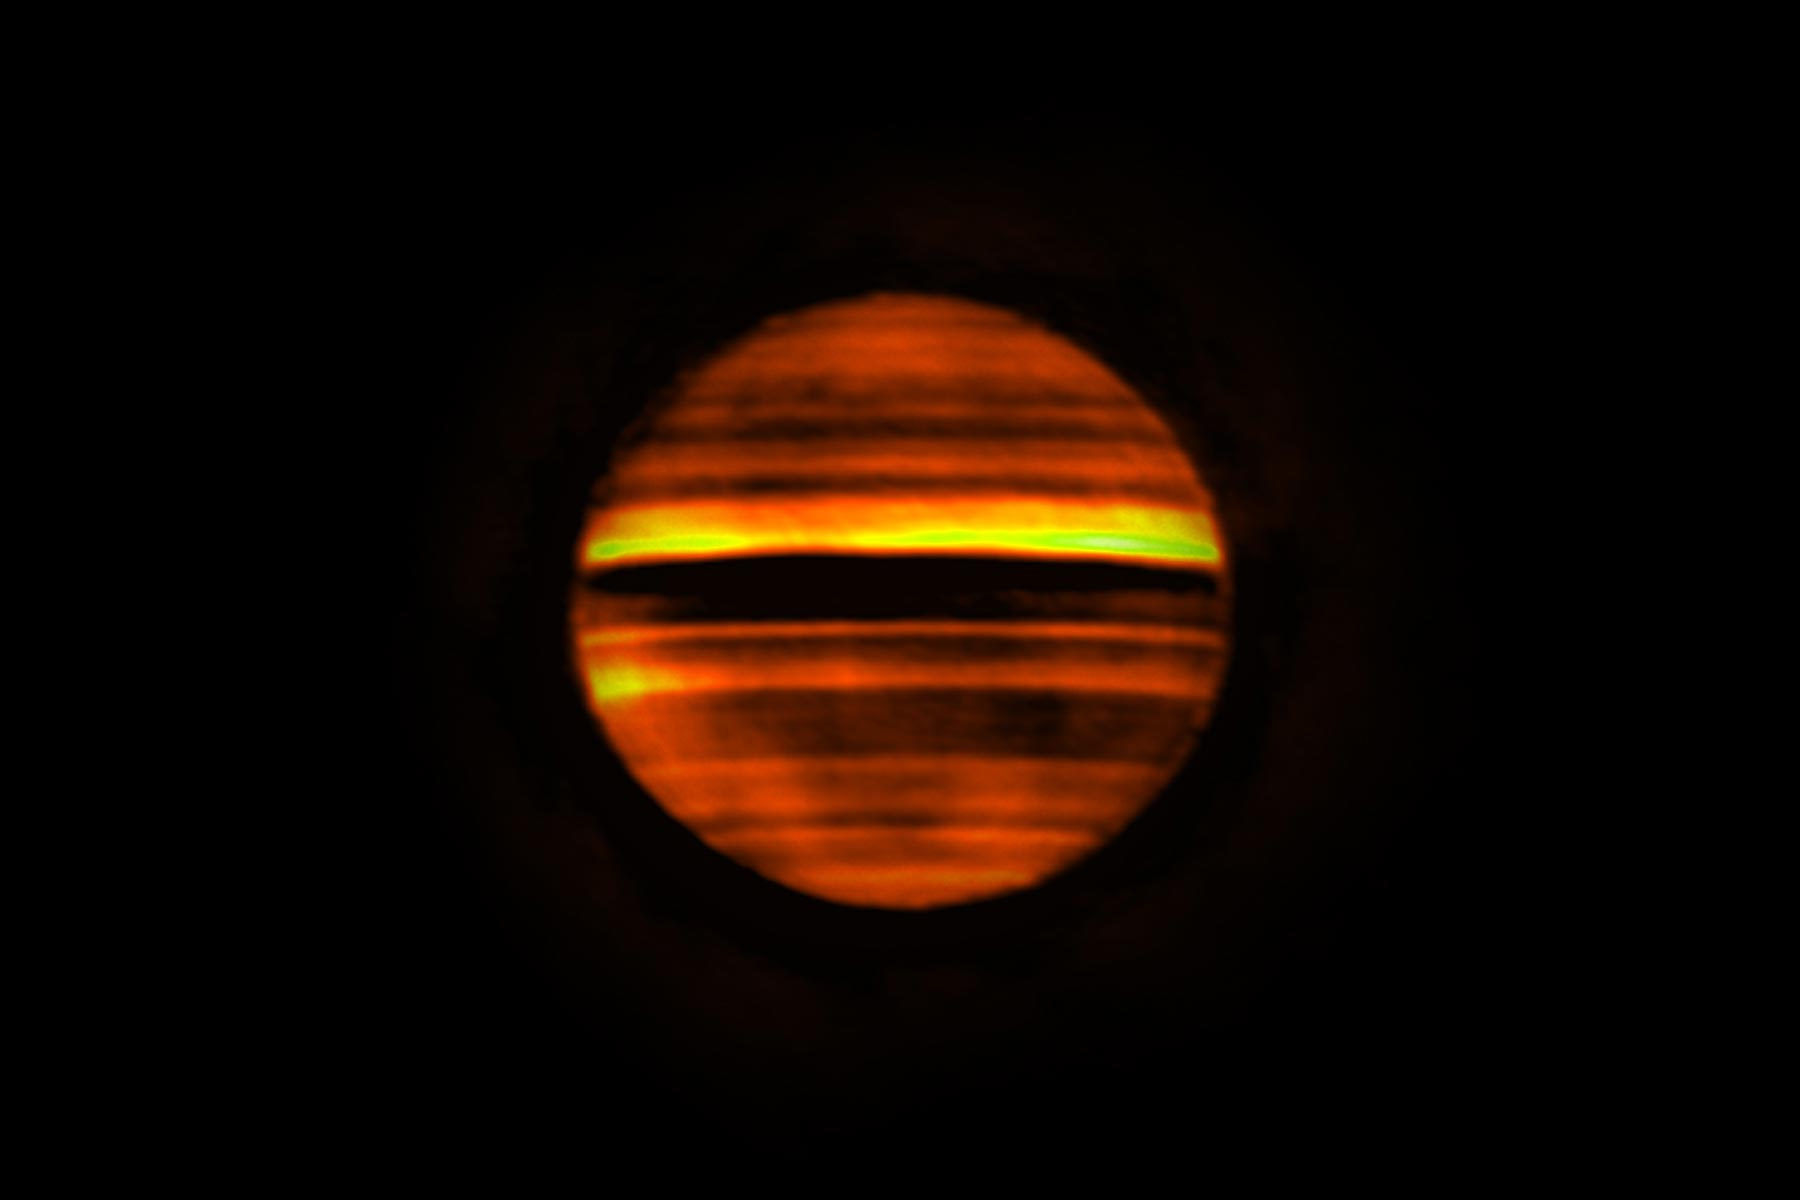 Radio Image of Jupiter Made with ALMA.